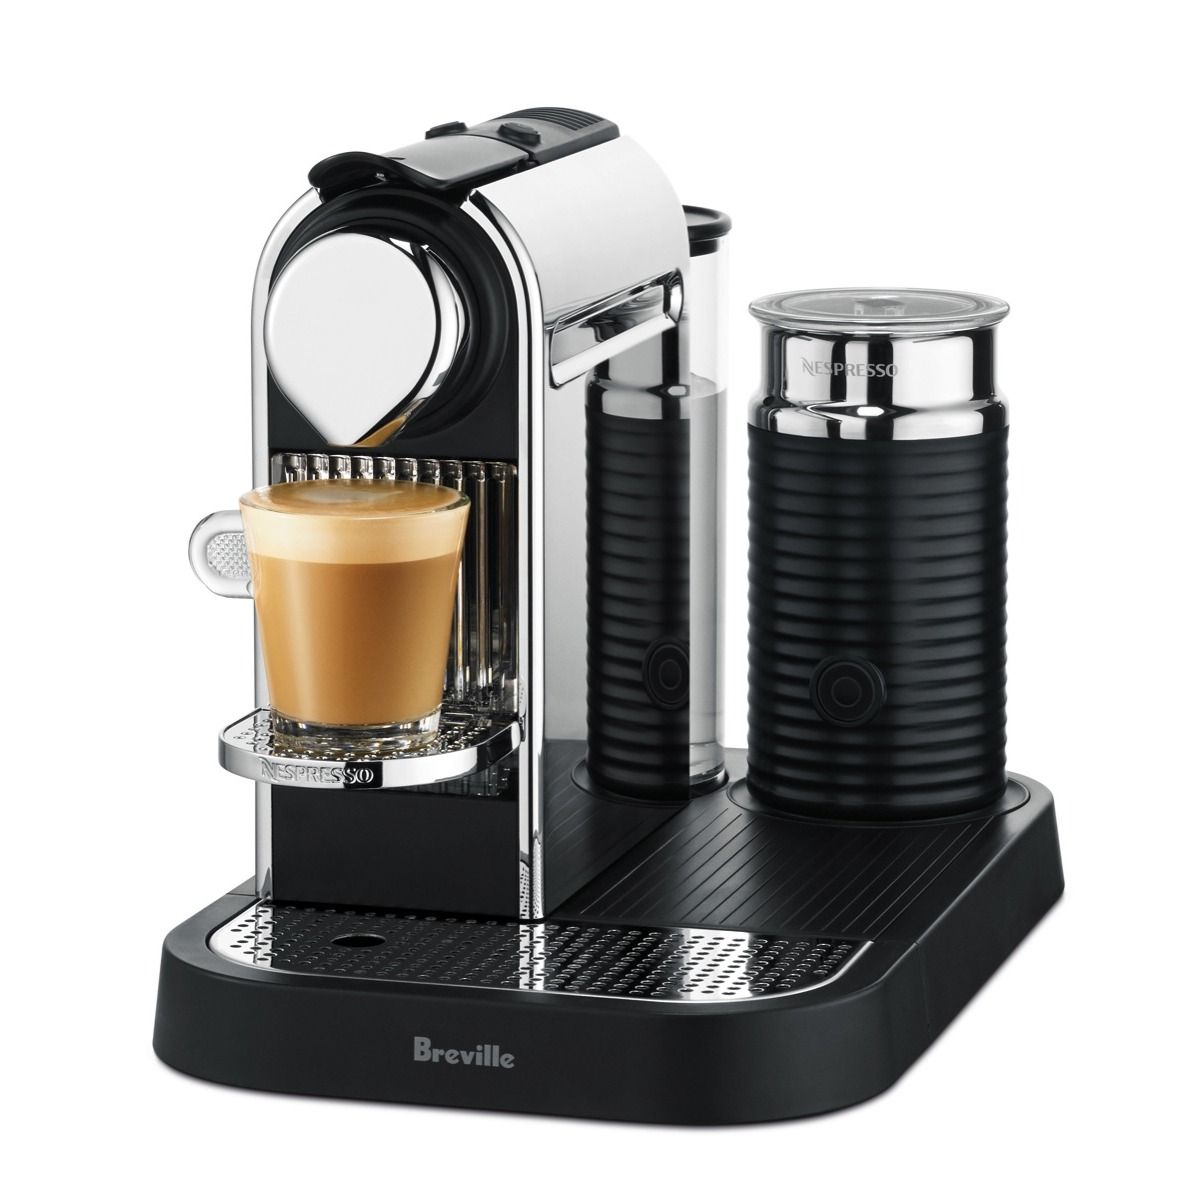 Check out the Nespresso Breville Citiz and Milk Chrome at